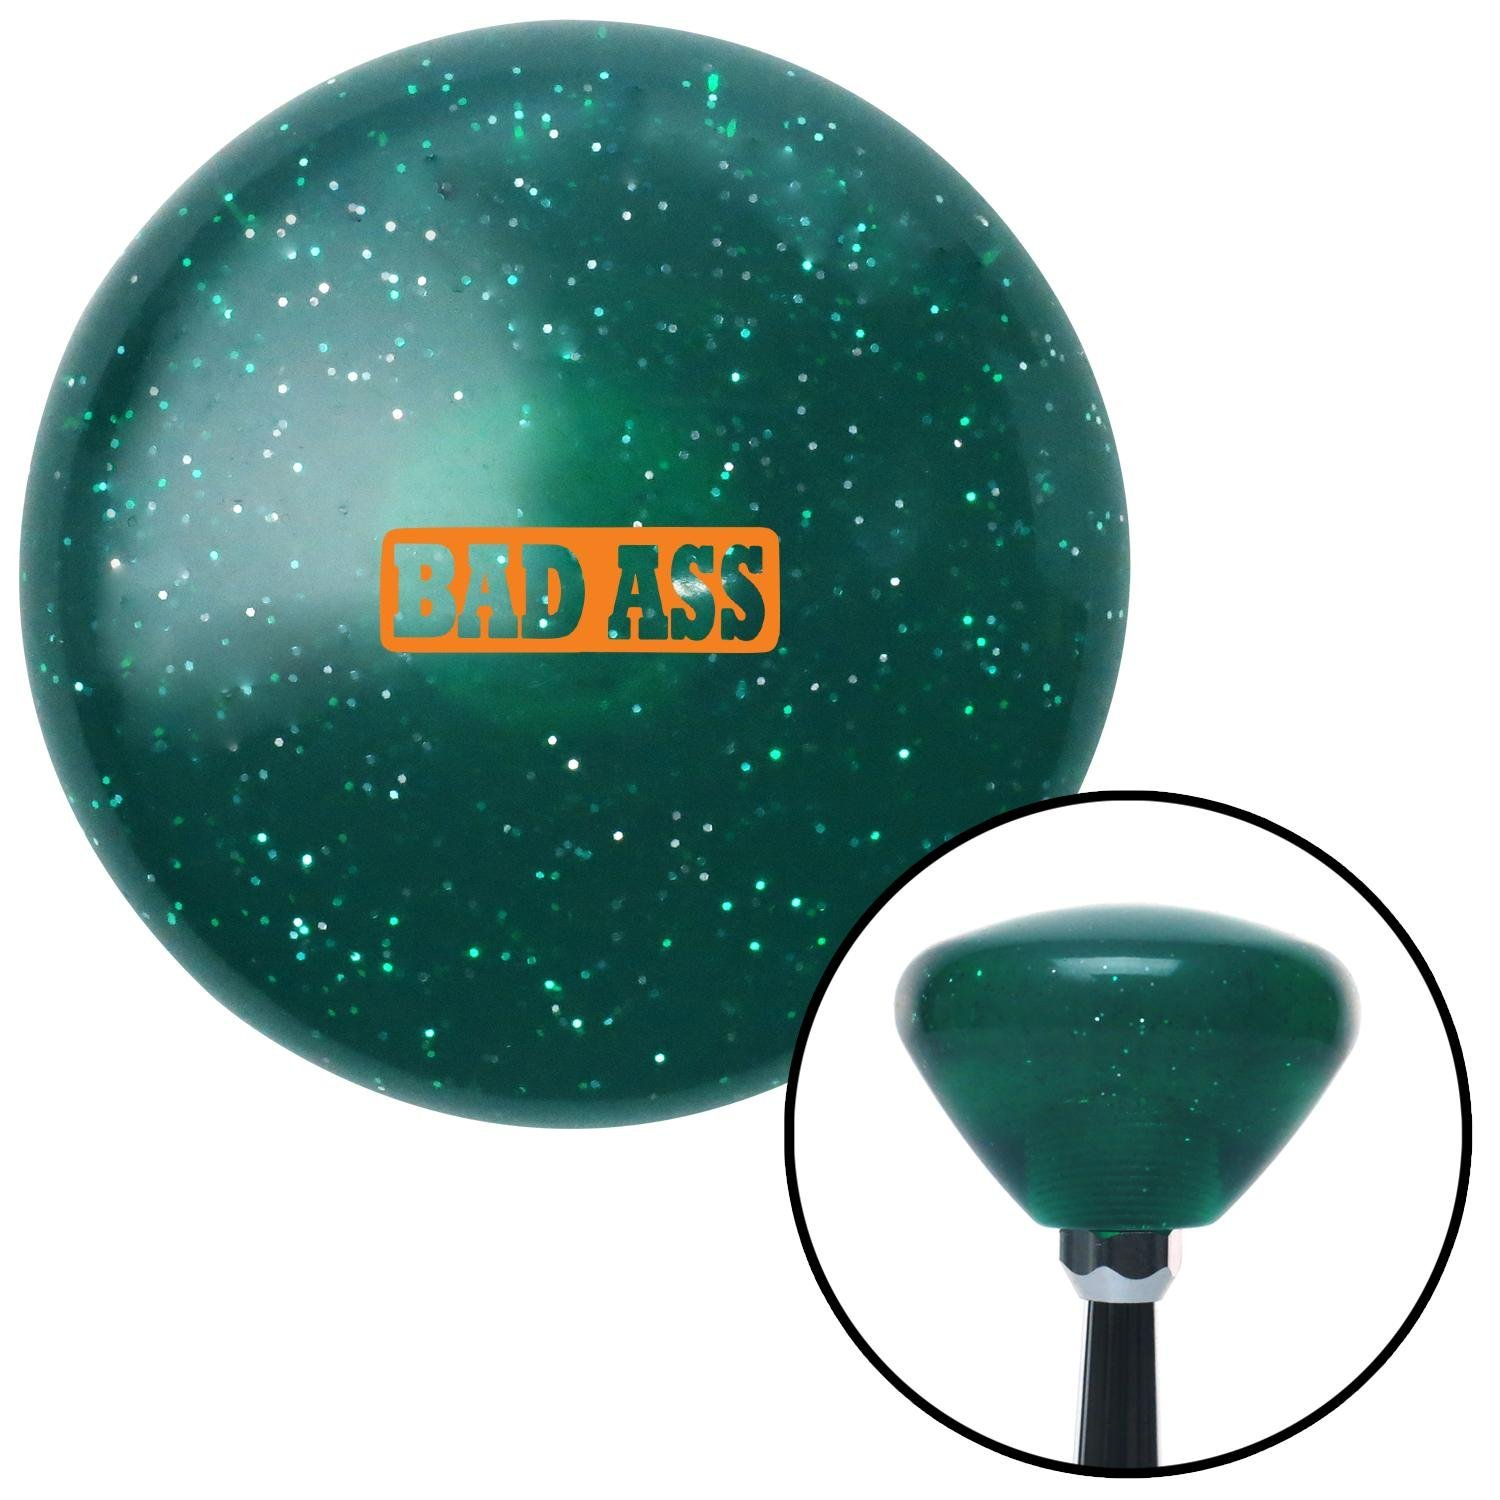 American Shifter 292402 Shift Knob Orange Bad Ass Green Retro Metal Flake with M16 x 1.5 Insert